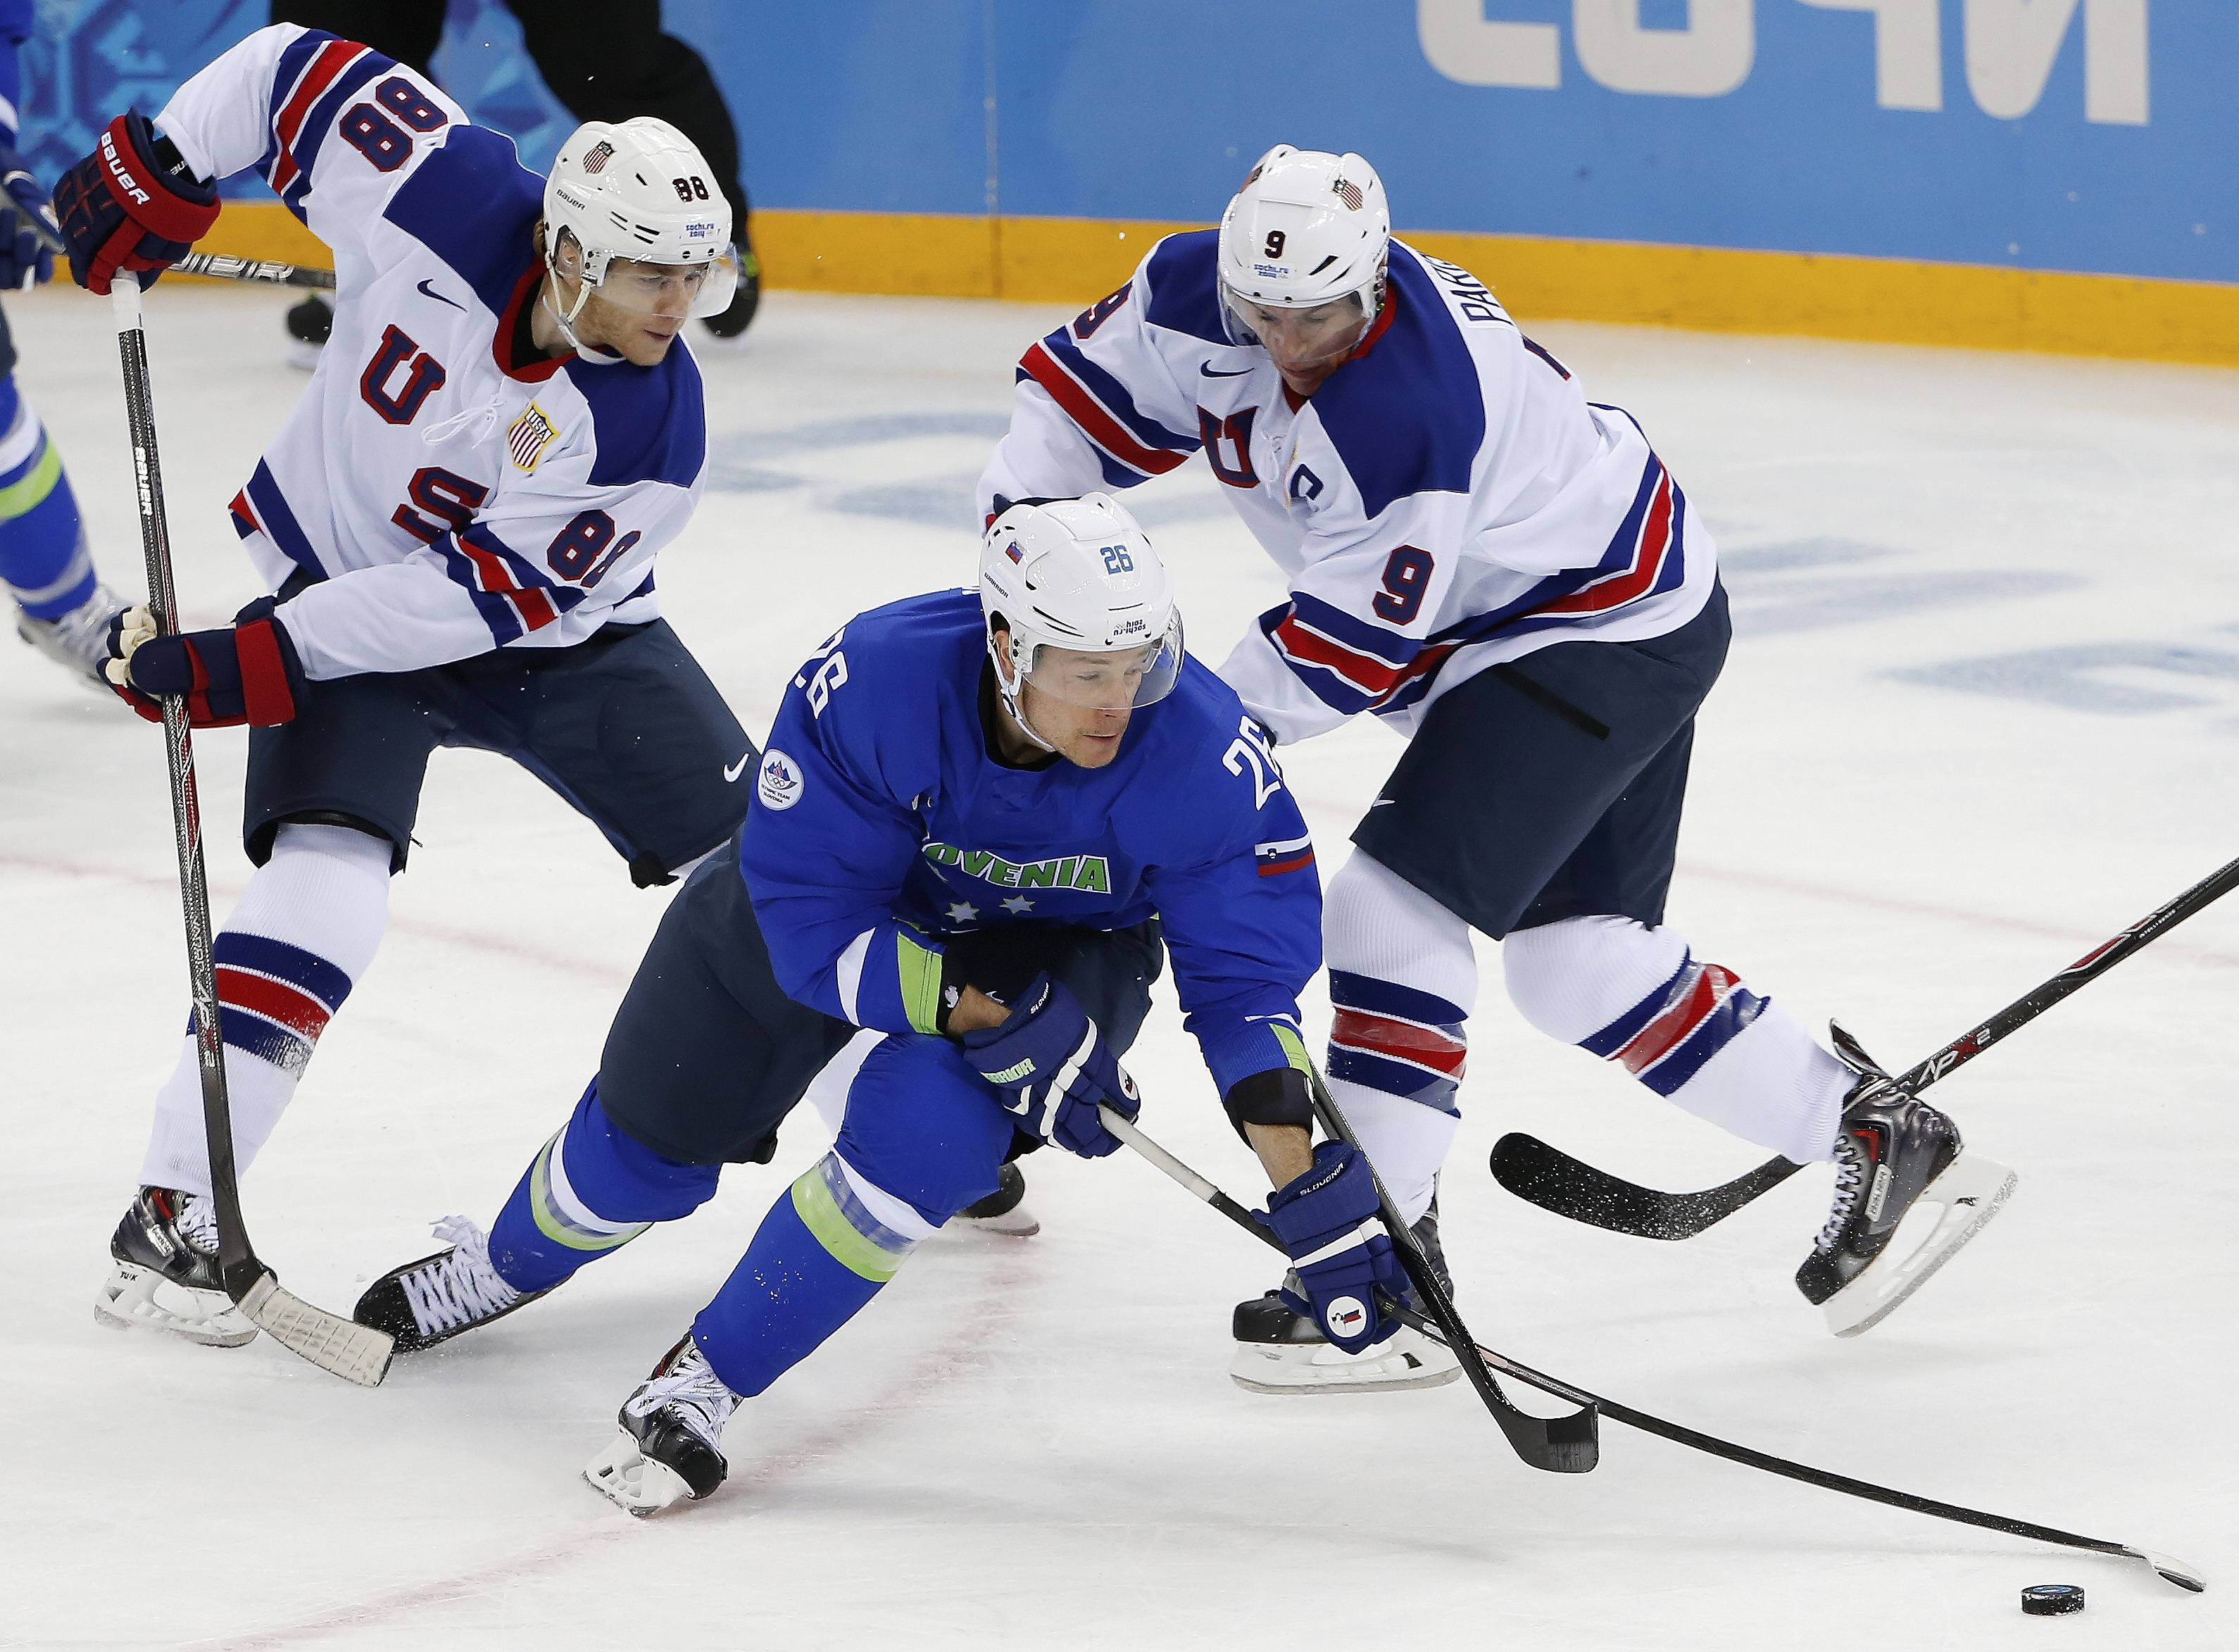 Will it be USA-Russia rematch for gold?